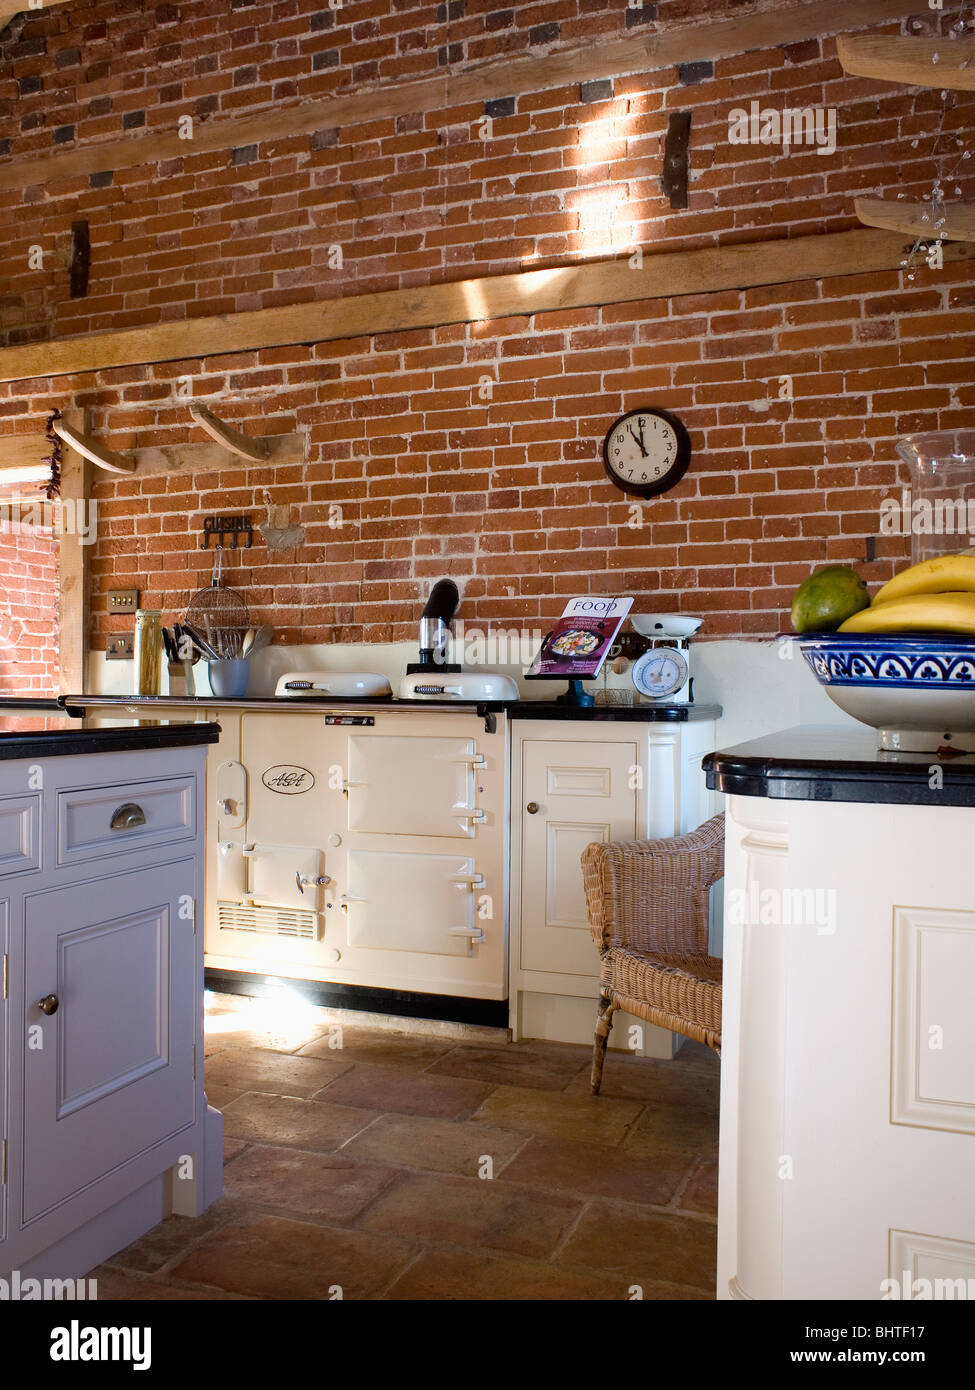 Cream Double Aga Oven In Barn Conversion Kitchen With Exposed Brick Walls